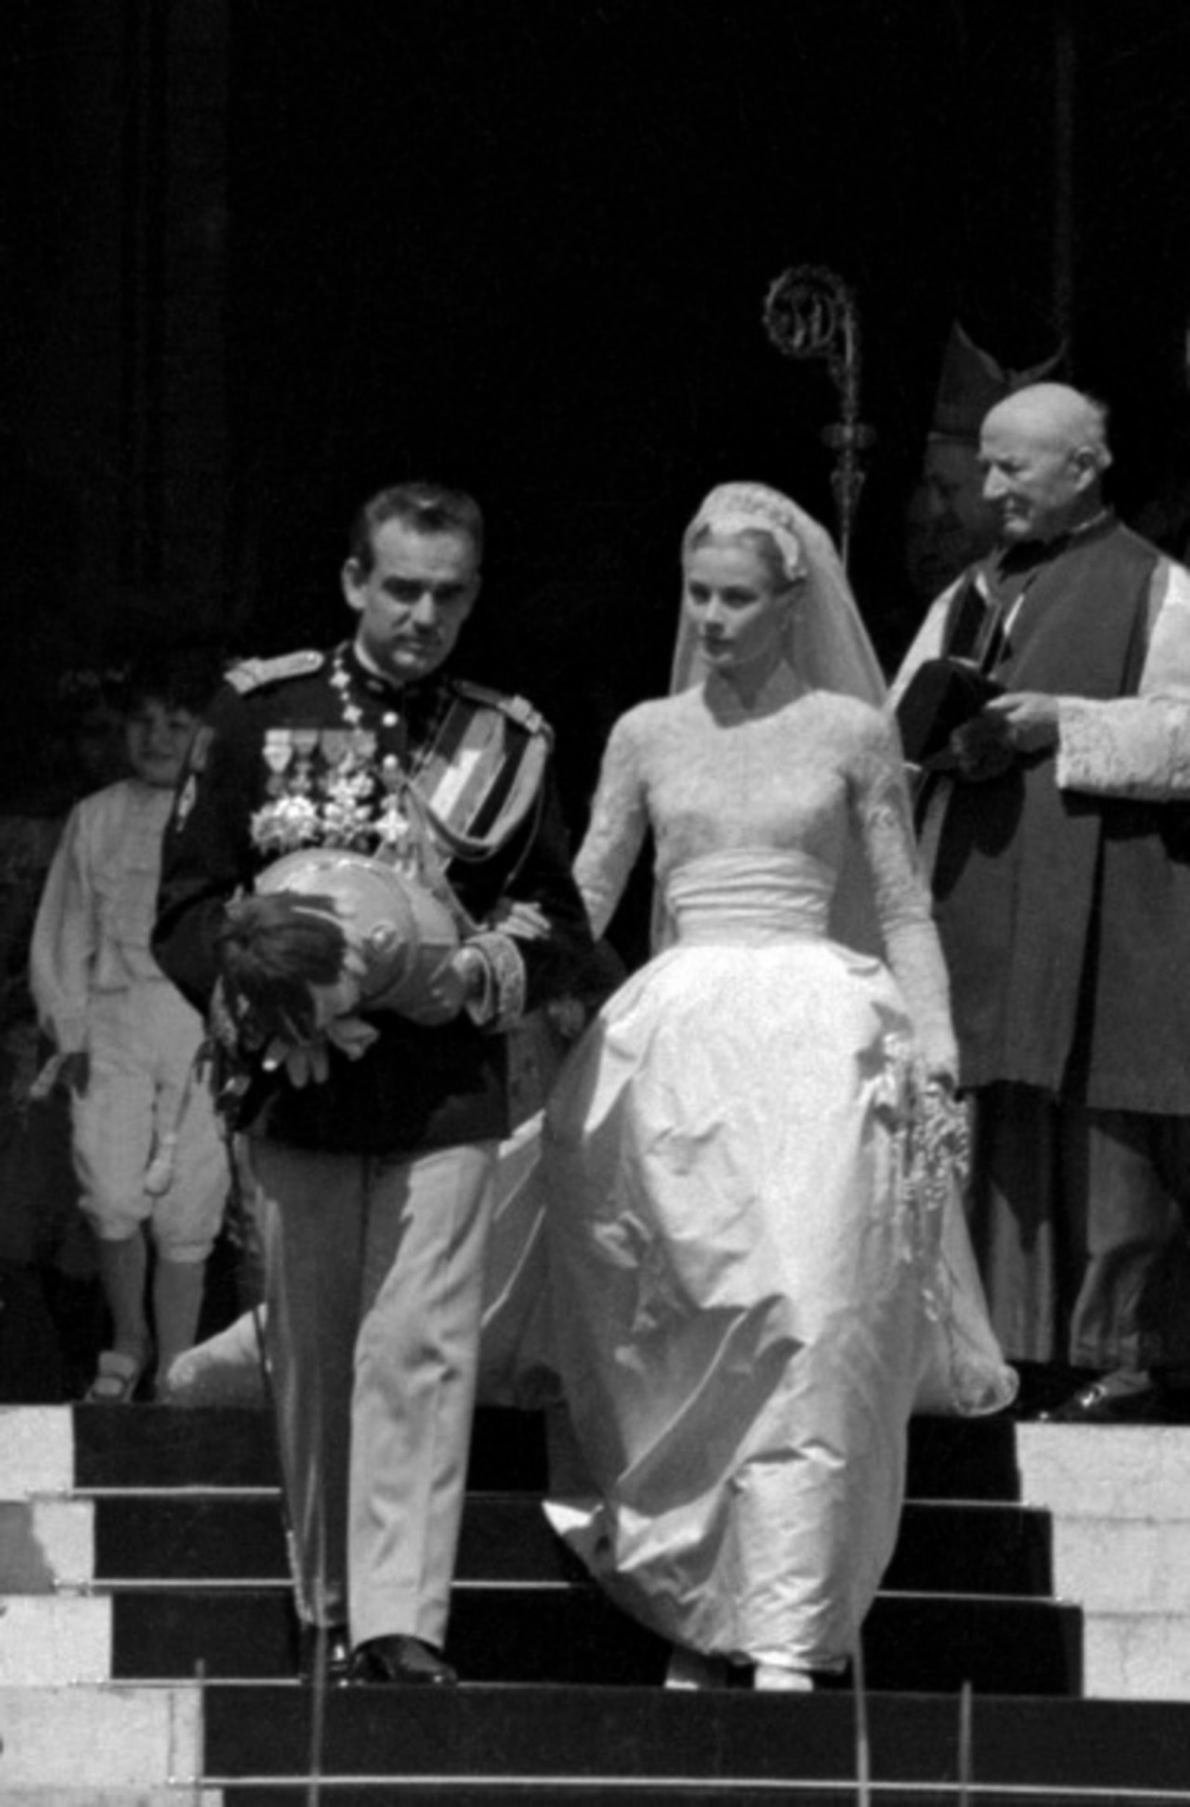 grace-kelly-wedding-ring-2-1-grace-kelly-engagement-ring-picture-prince-rainier-0515-1190-x-1807.jpg